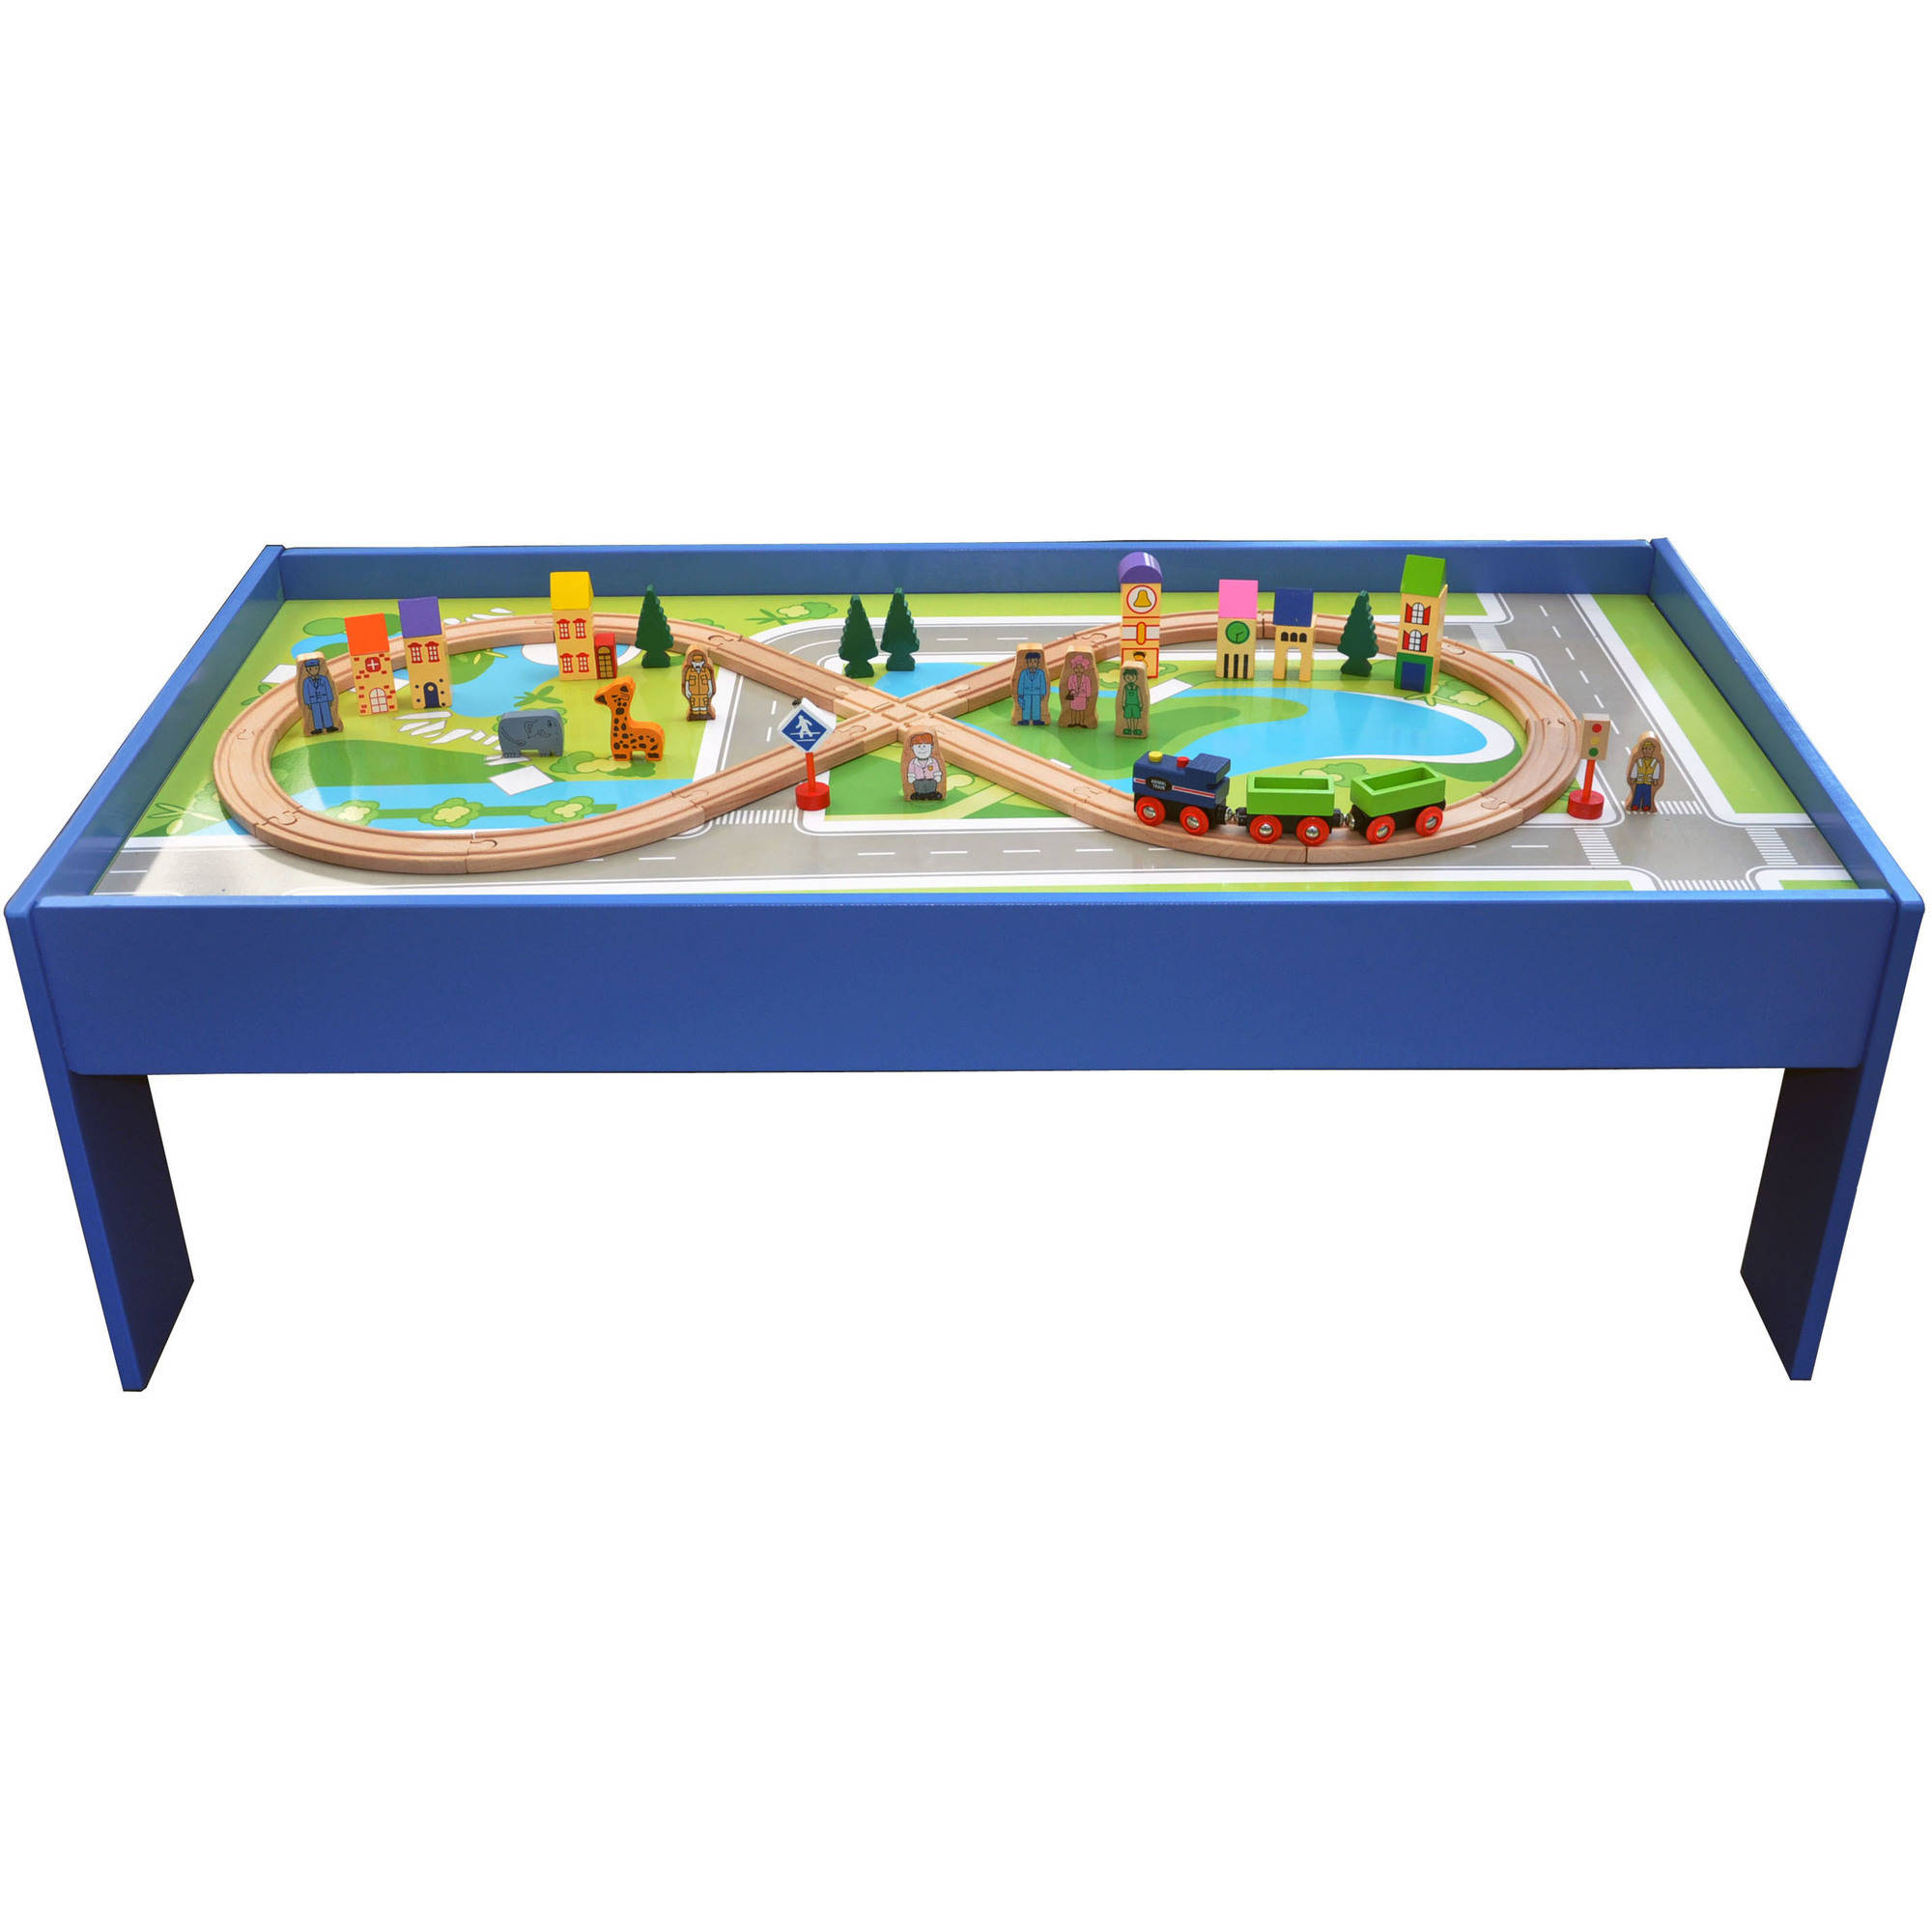 51-Piece Wooden Train Set with Table